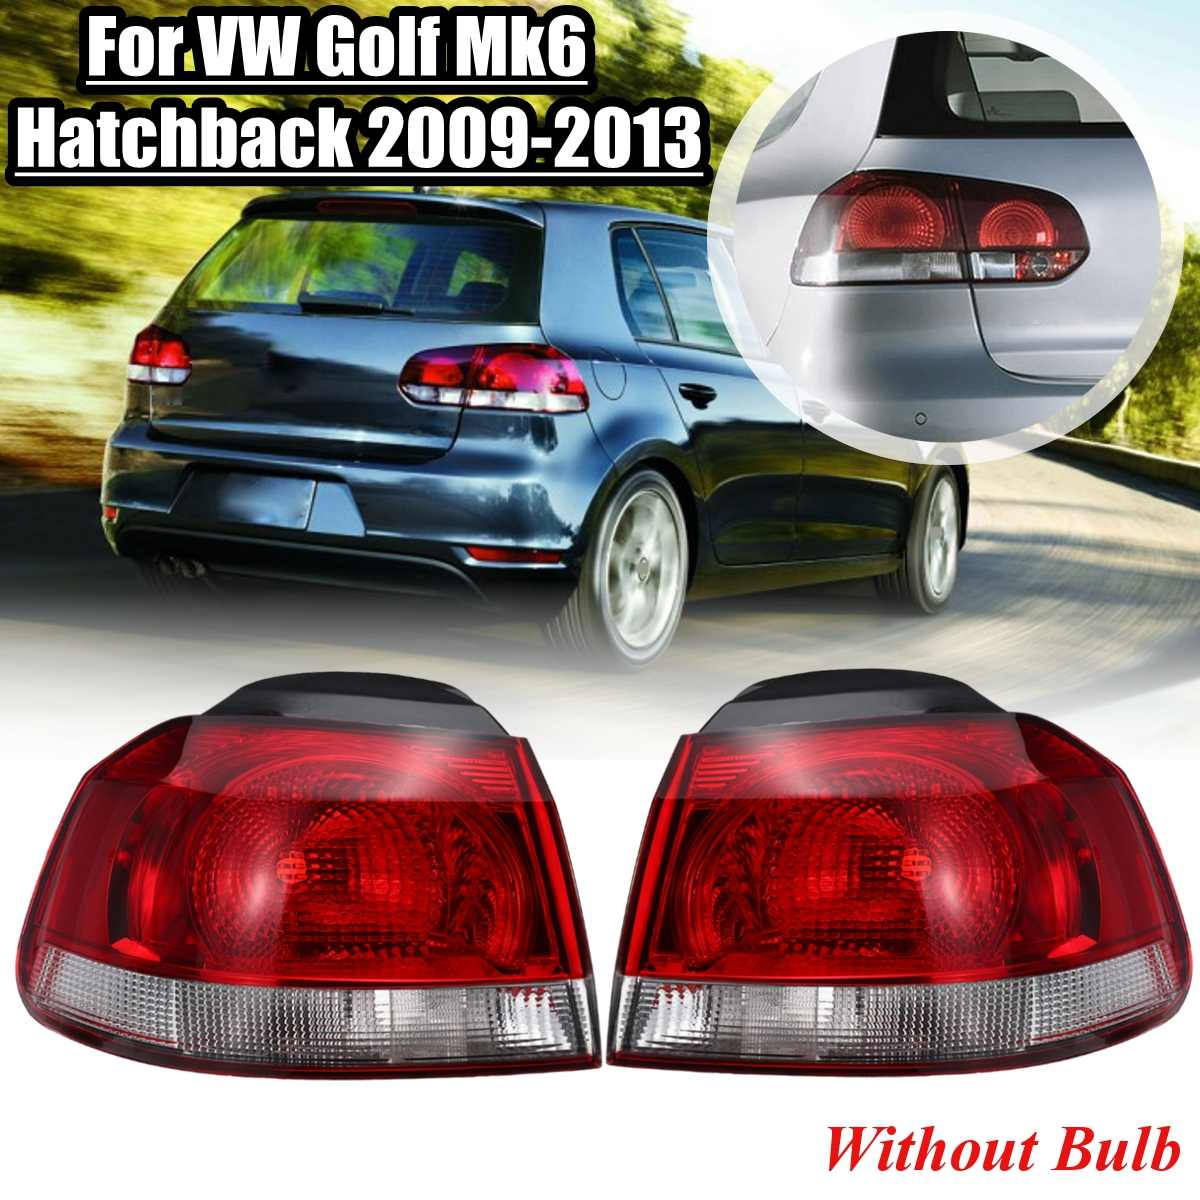 2Pcs Car Outter Tail Light For VW Golf Mk6 Golf 6 Hatchback 2009-2013 Taillights Replacement Rear Reverse Driving Side Fog Lamp2Pcs Car Outter Tail Light For VW Golf Mk6 Golf 6 Hatchback 2009-2013 Taillights Replacement Rear Reverse Driving Side Fog Lamp